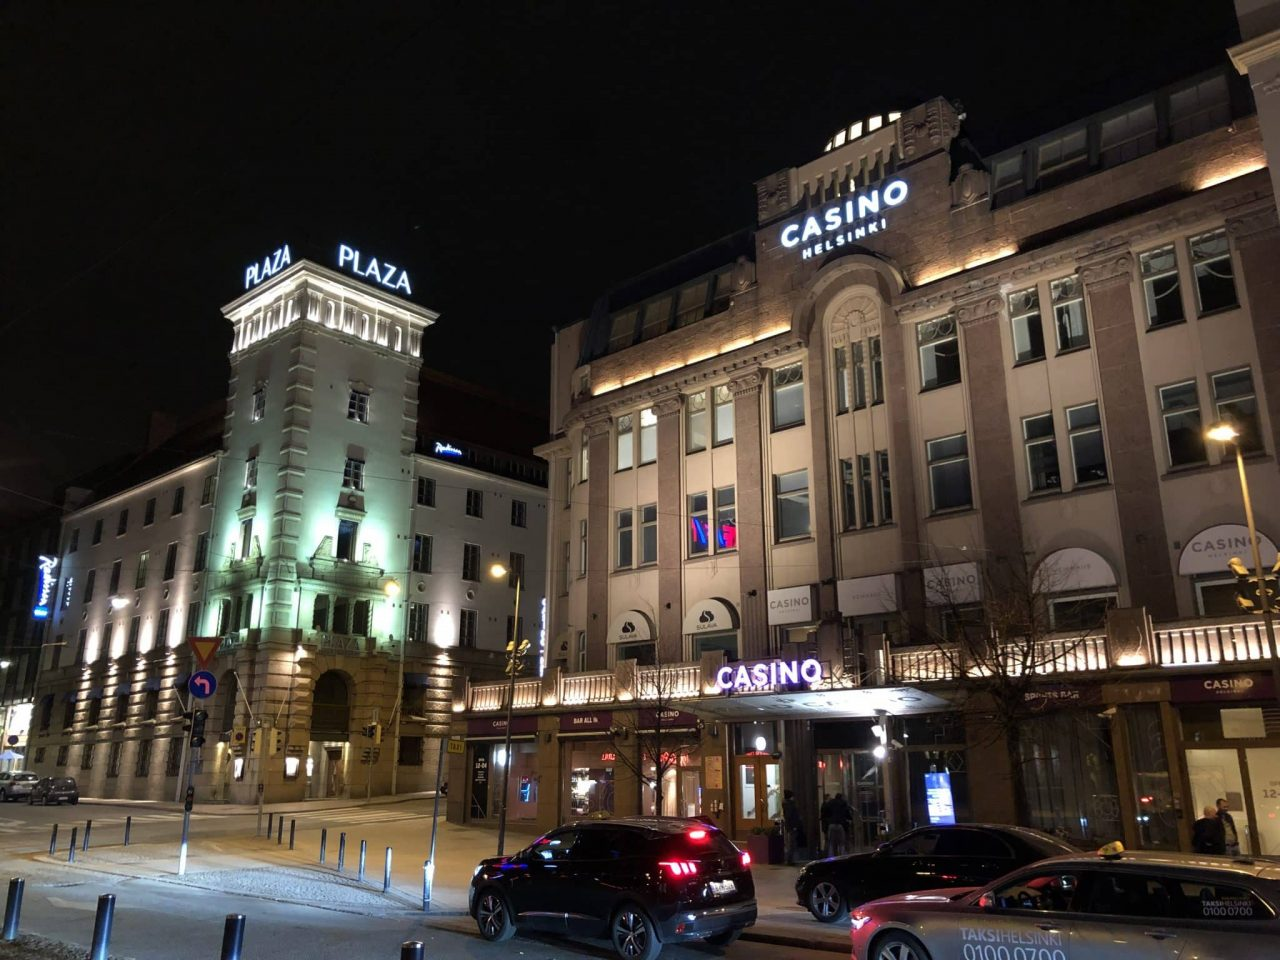 This is the exterior of the Casino Helsinki in the capital of Finland, one of the biggest gambling establishments in the country. Under the picture you can read about gambling, online gambling, bitcoin gambling, sports betting, poker, lottery, keno, bingo laws, regulations rules and customs of Finland.